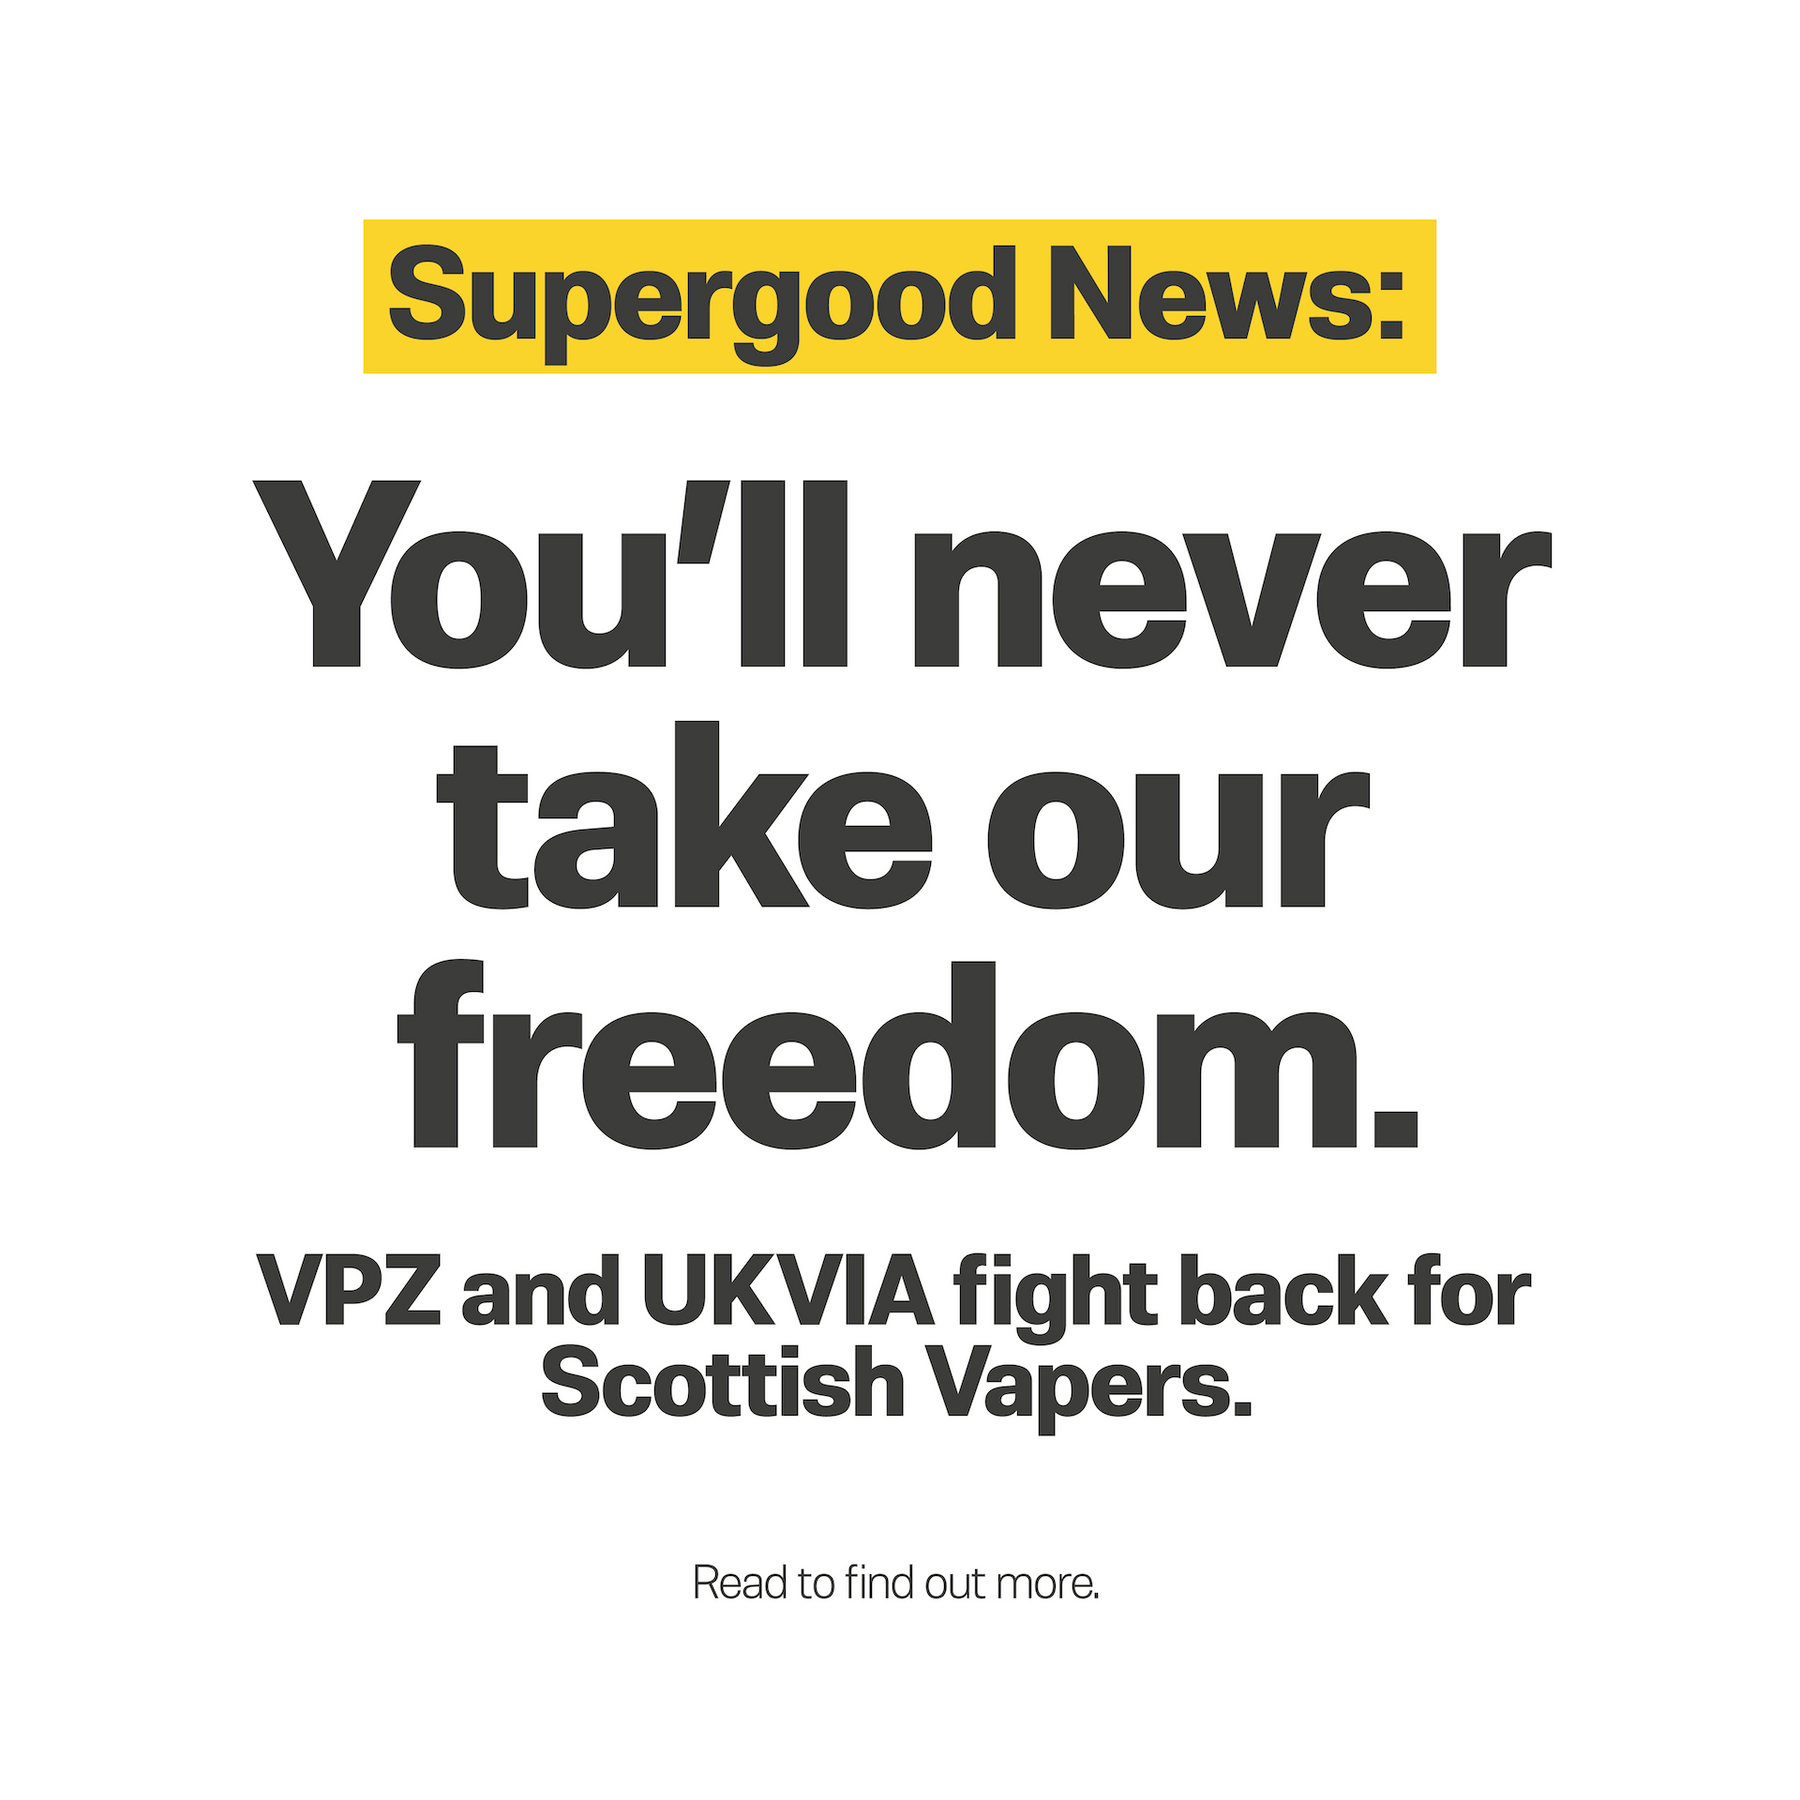 VPZ and UKVIA fight back for Scotland Vapers.